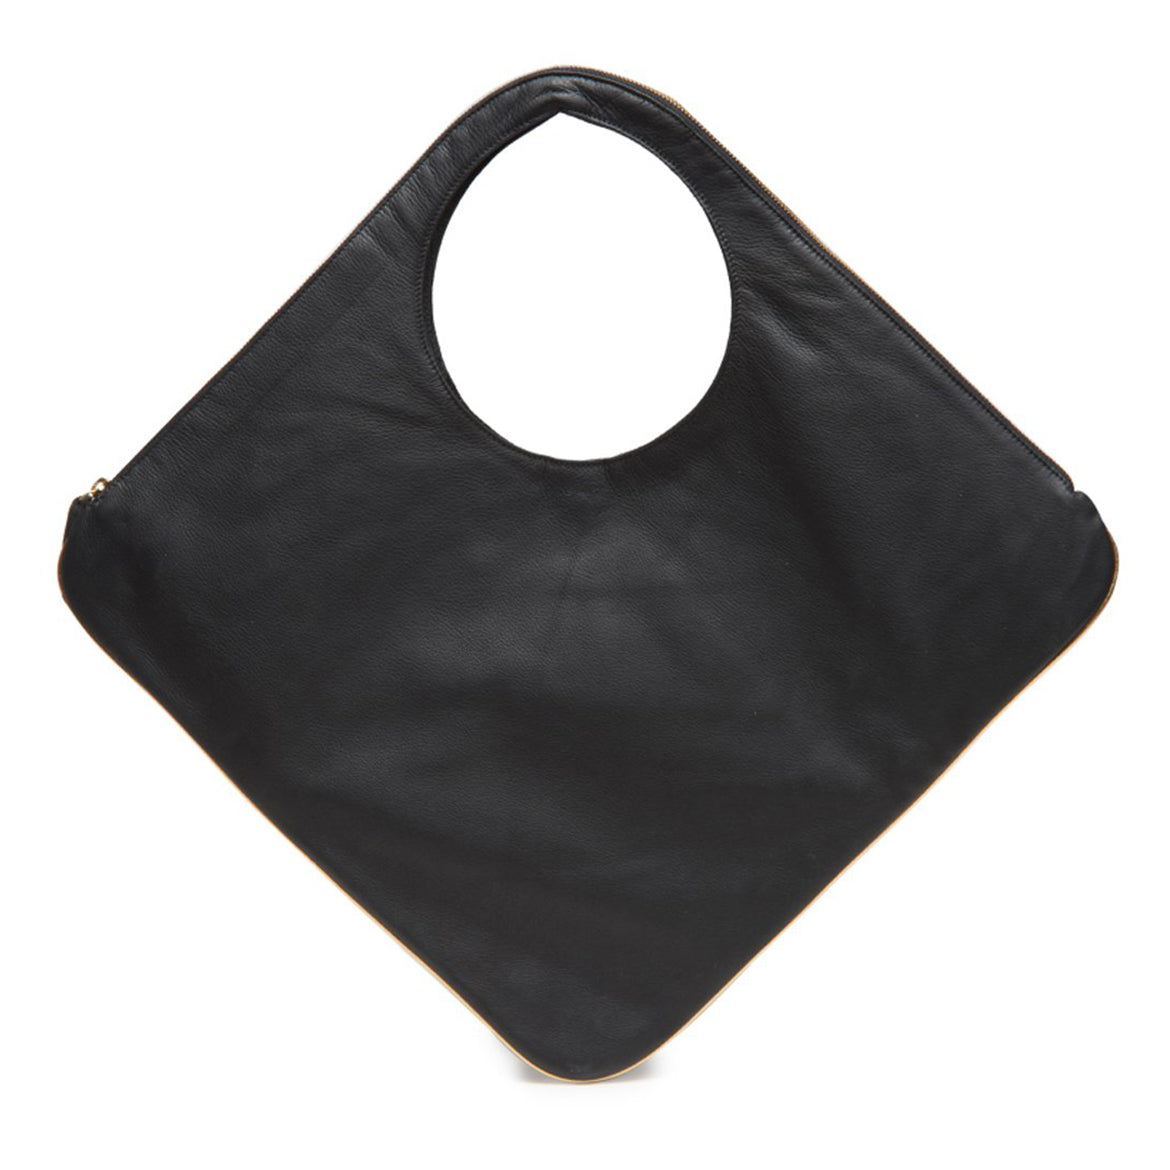 Diamond Bag - Black - Italian Leather